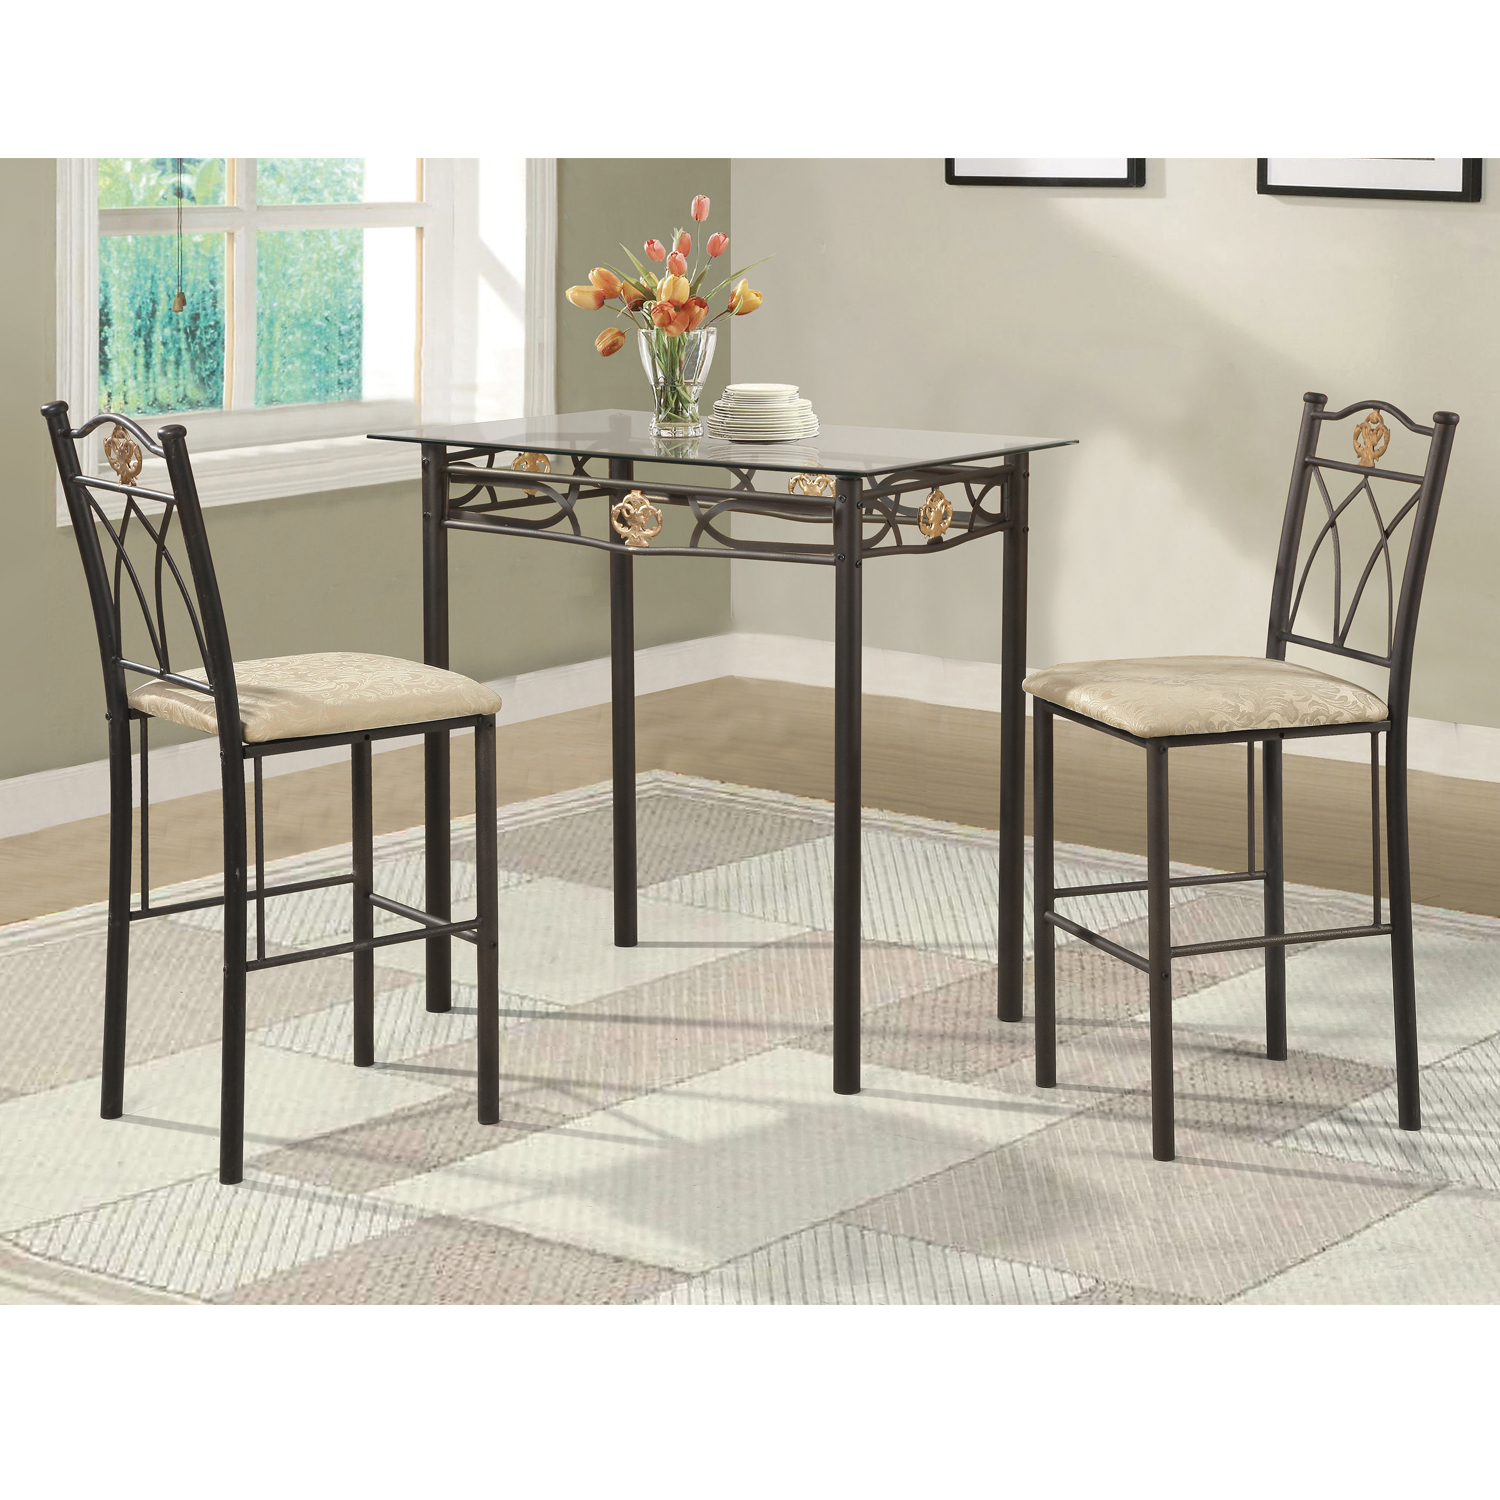 Home Source Crown Bronzed Counter Height 3 Piece Bistro Set